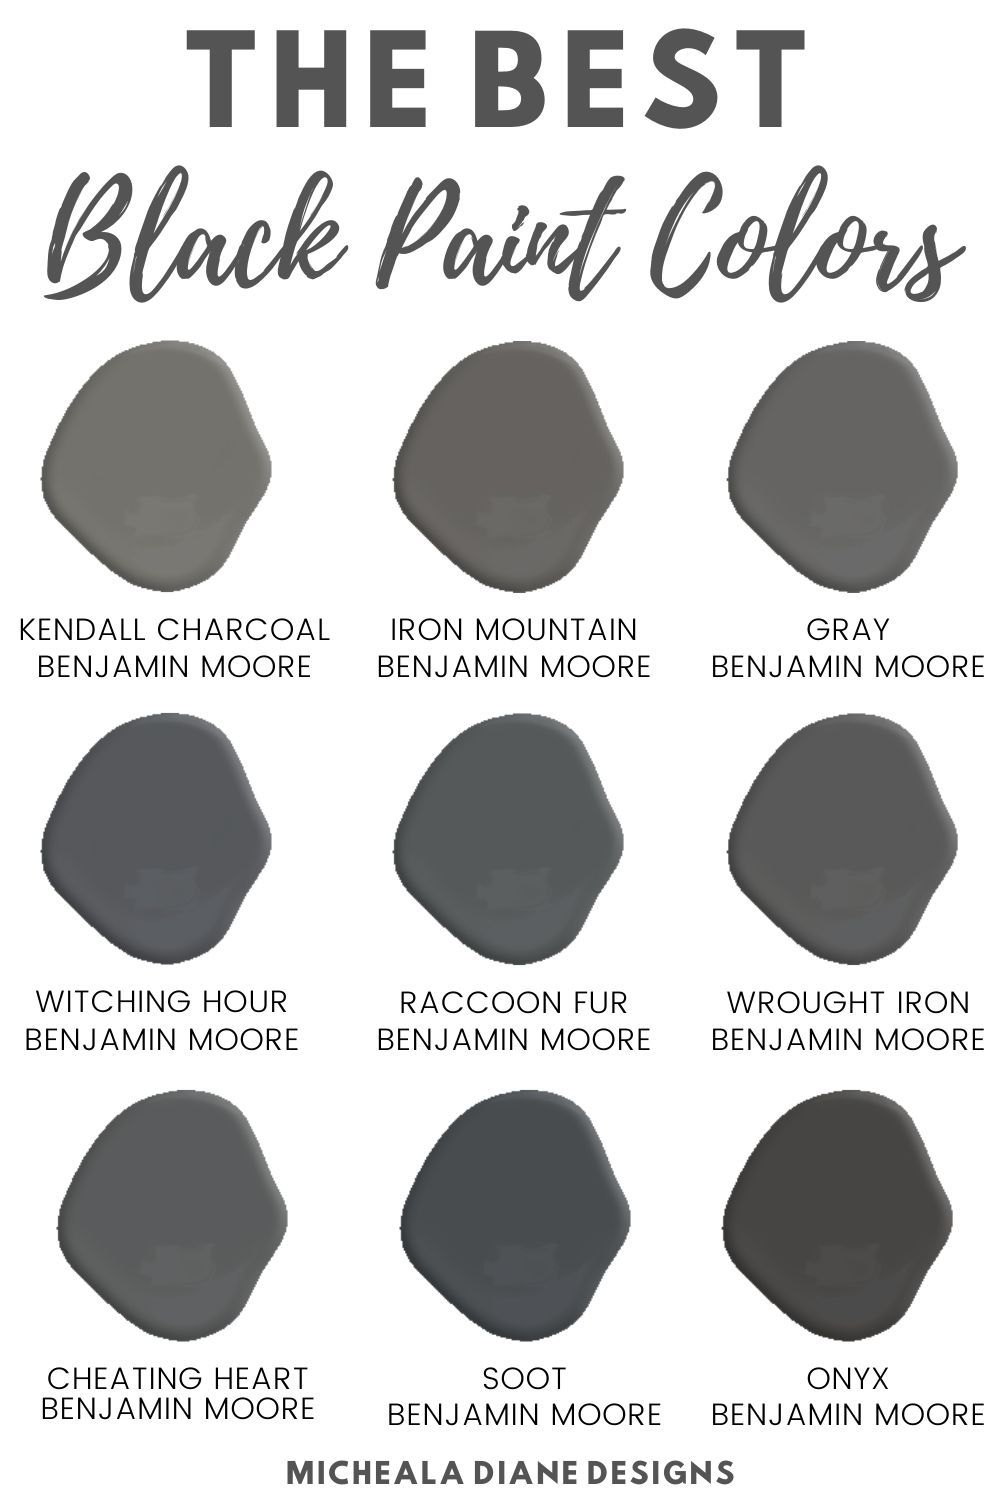 The Best Home Decor Paint Colors: Kendall Charcoal | The